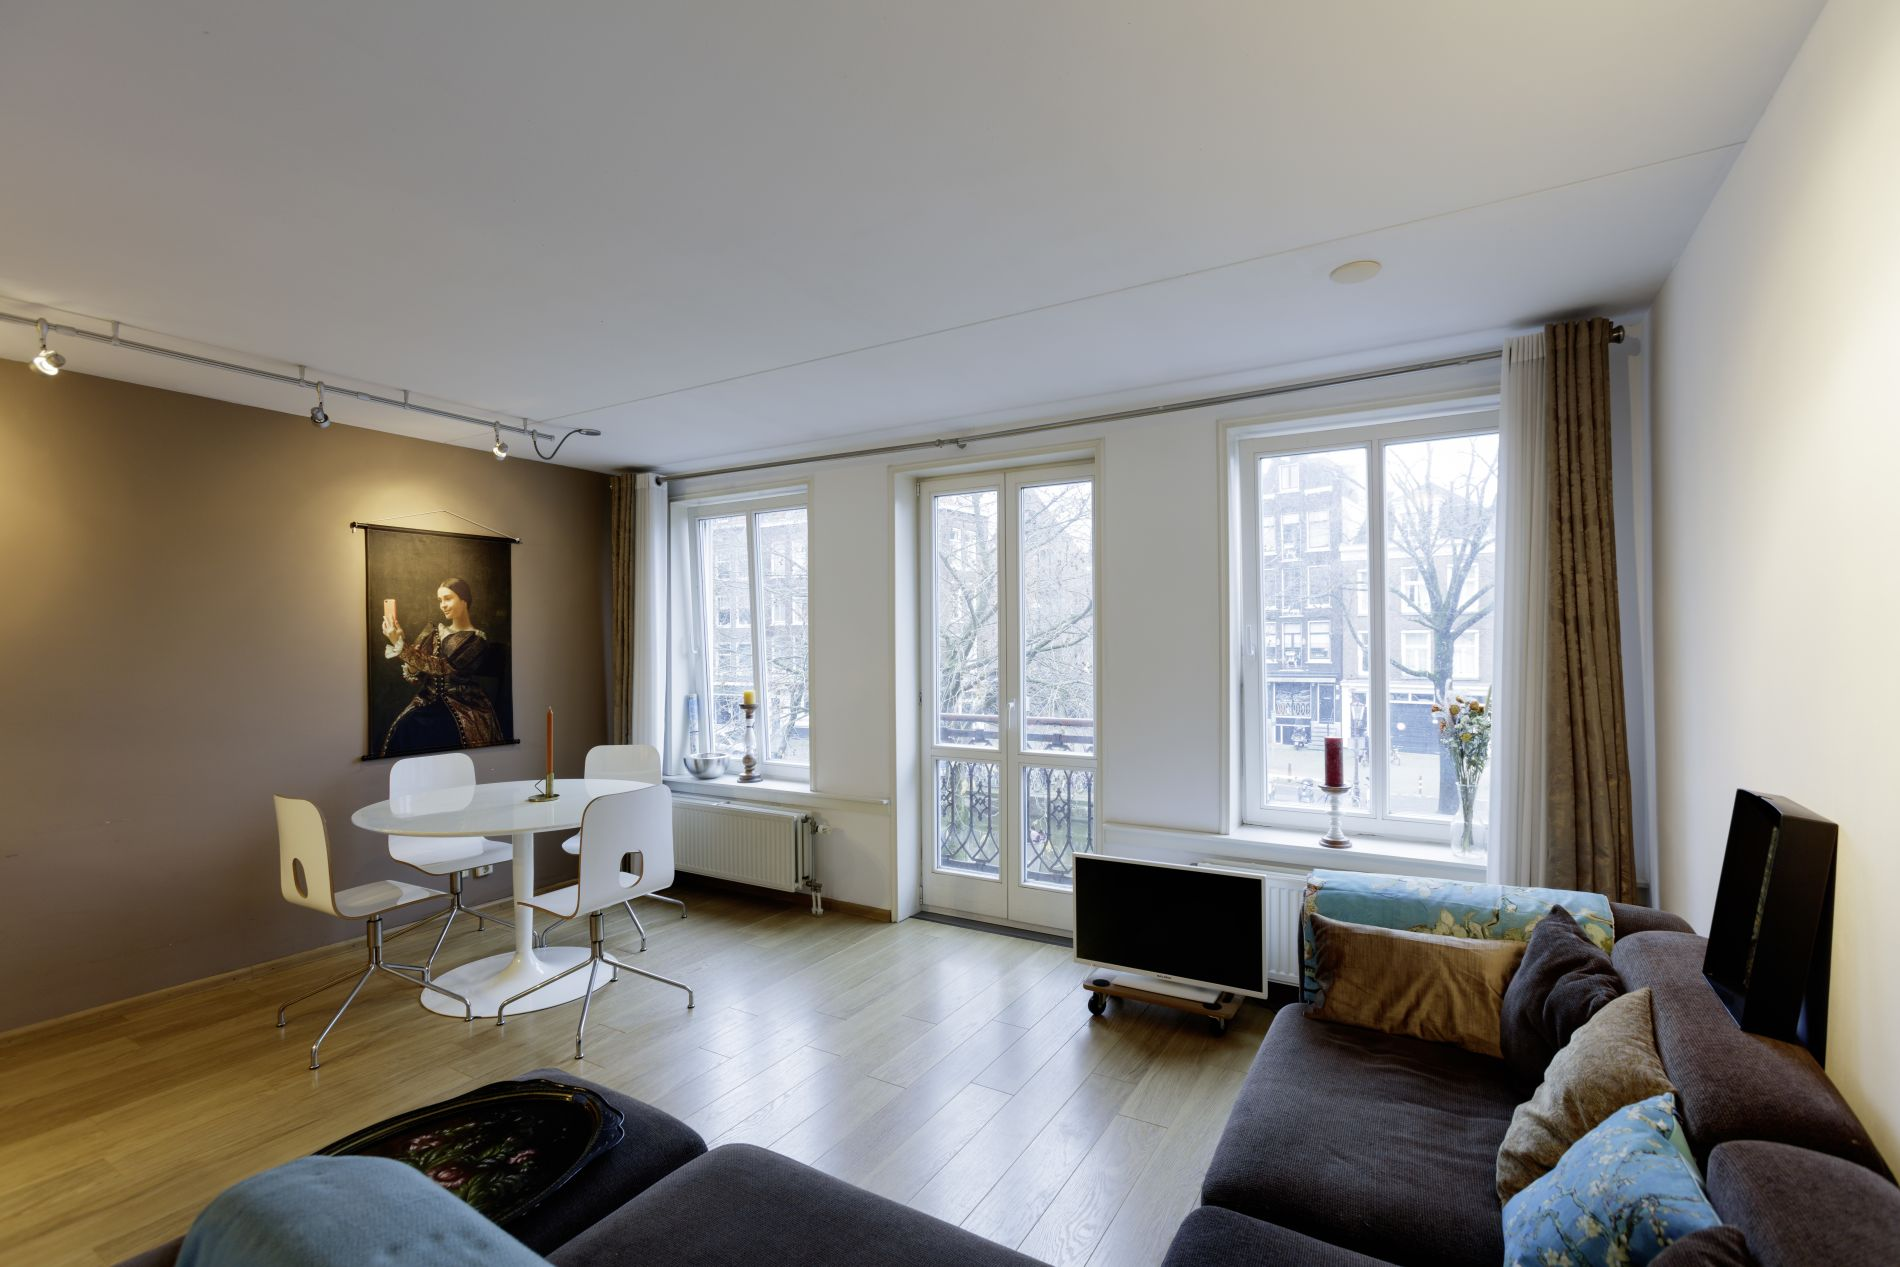 Serviced apartment with a beautiful balcony in Amterdam's canal district